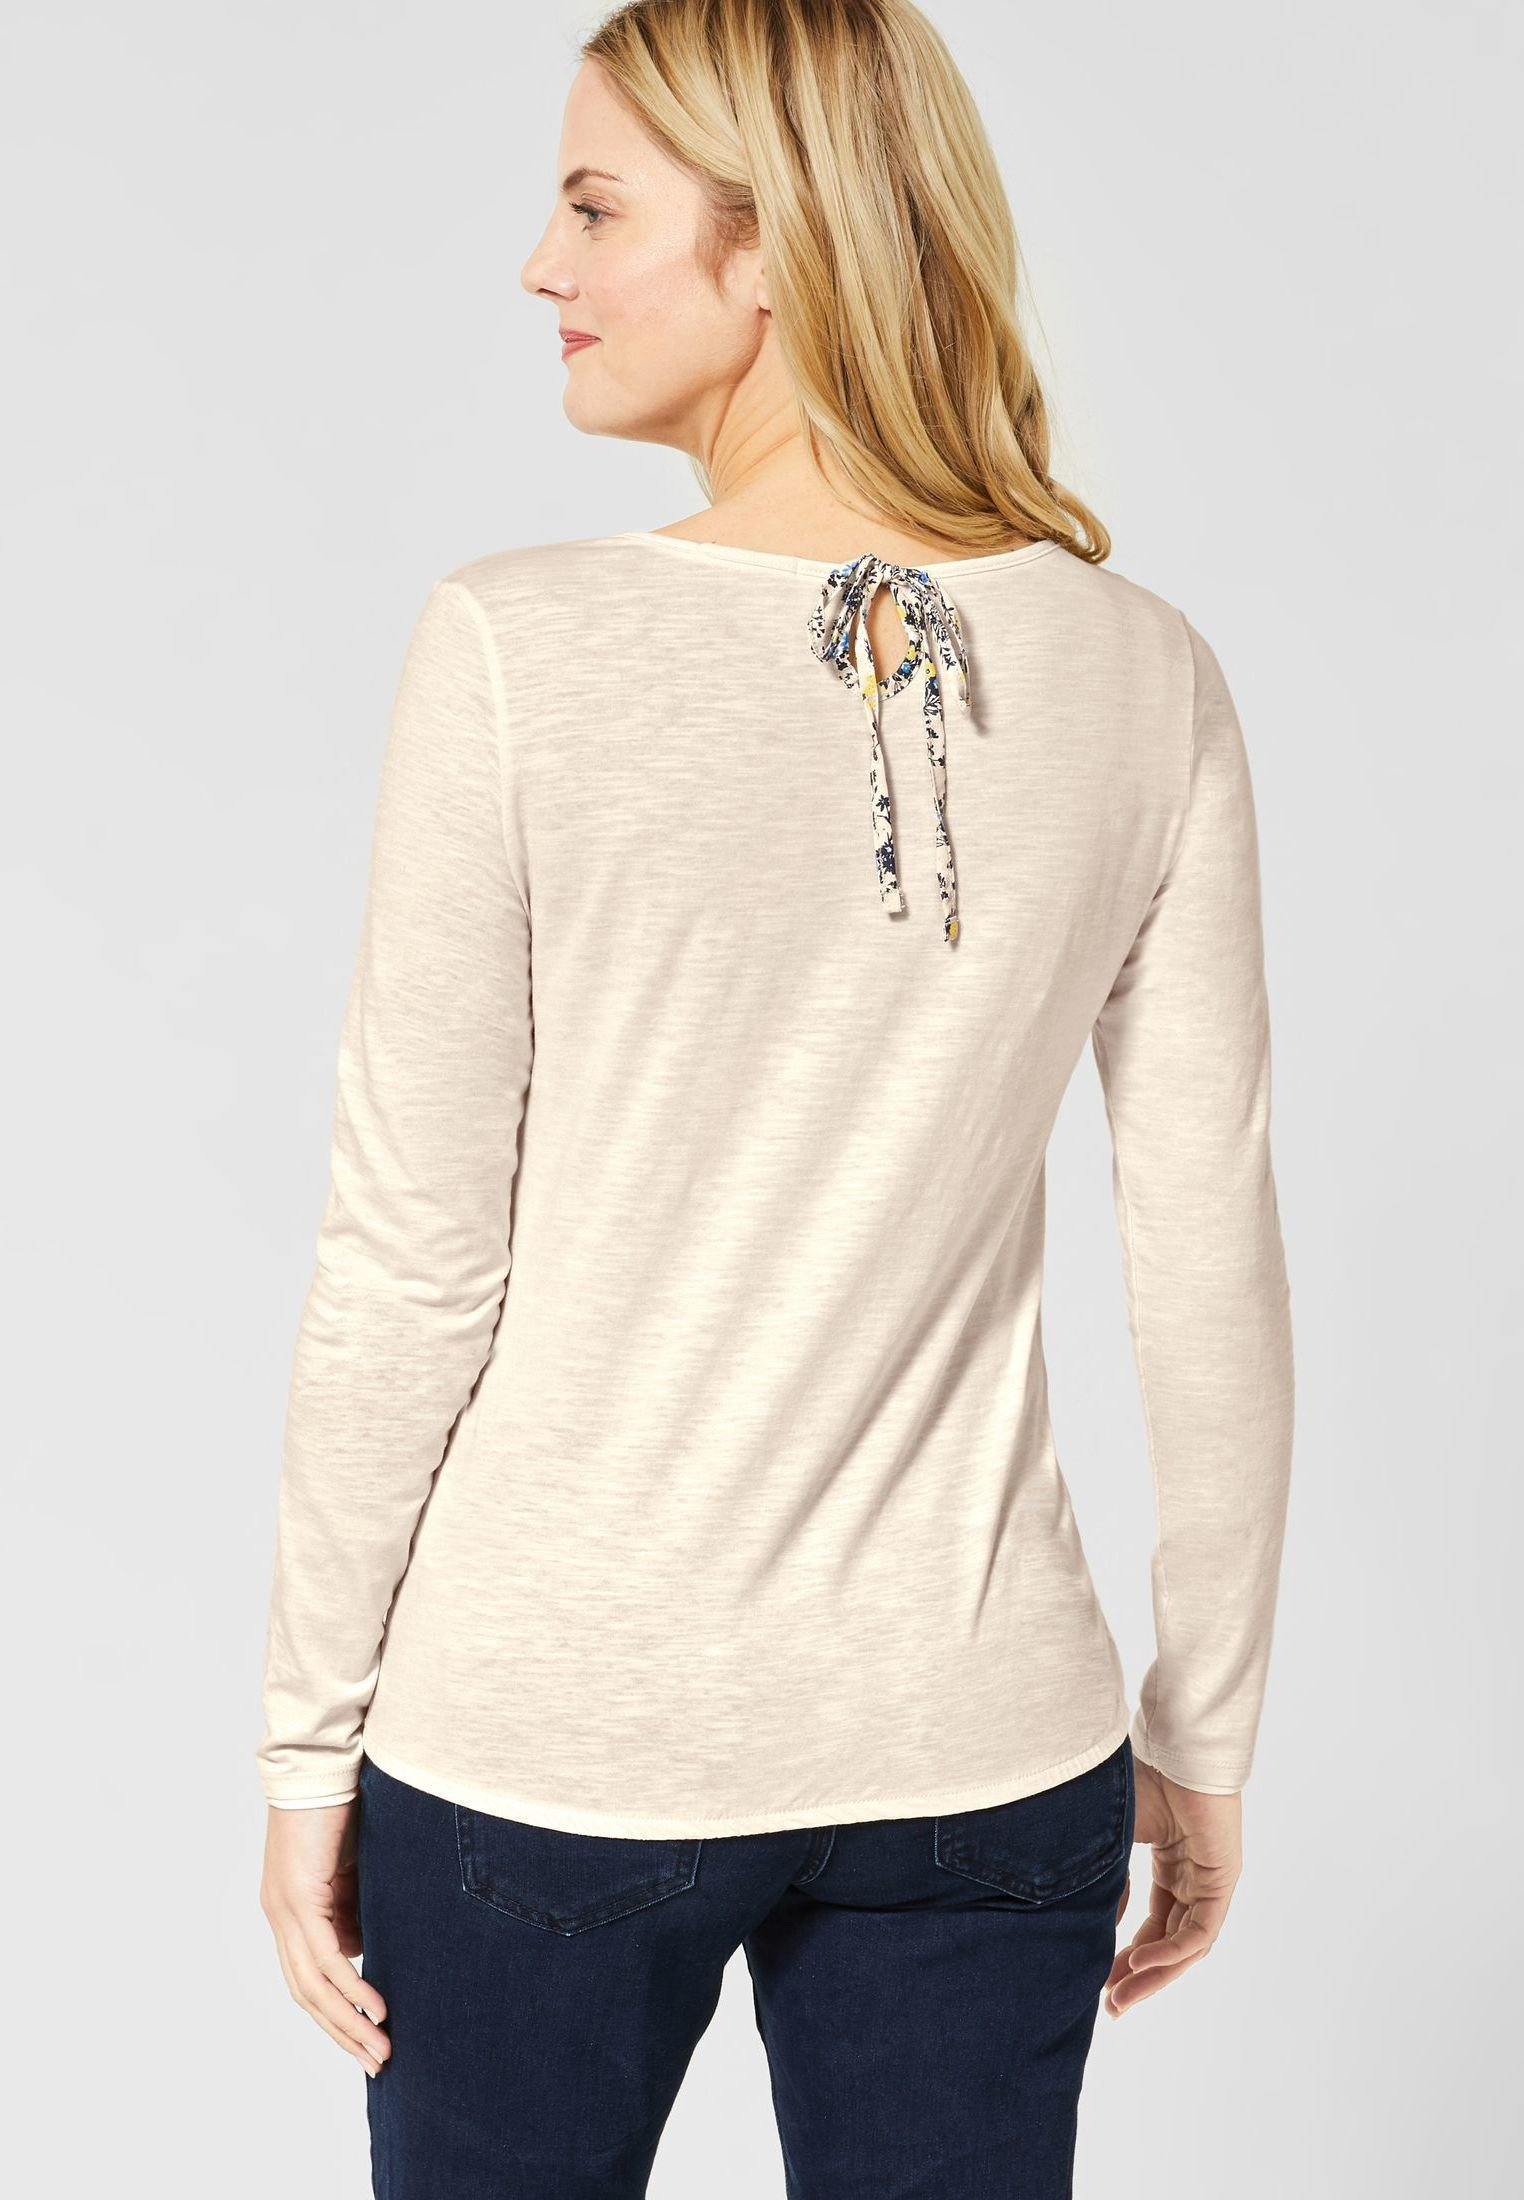 Cecil Long Sleeved Top - Beige